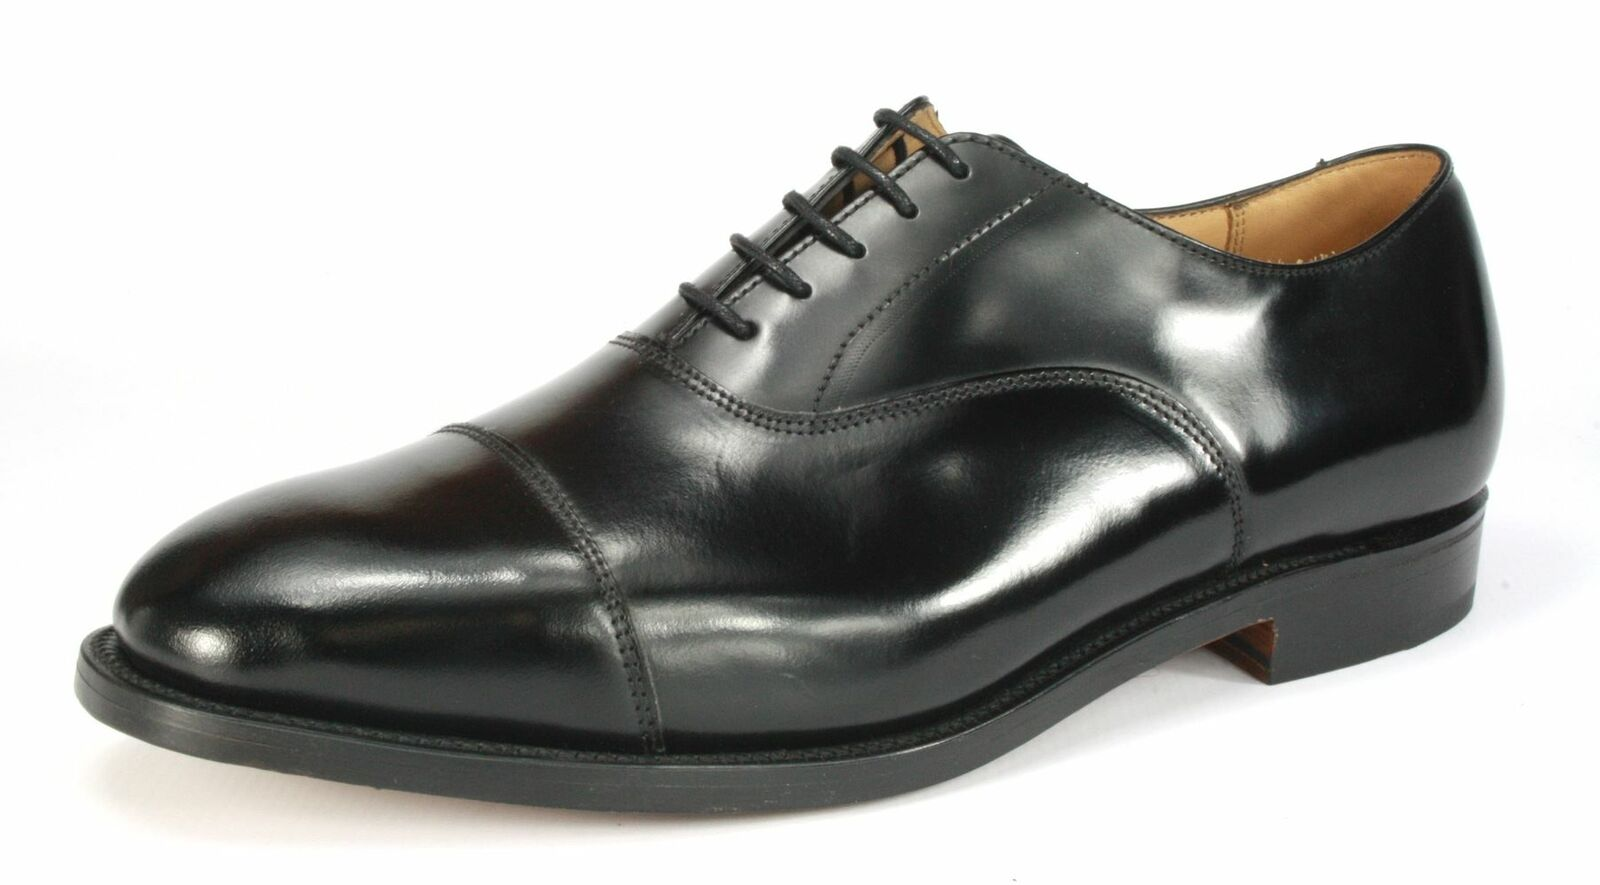 Charles Horrel Handmade in England Welted Cap Formal Mens Leather sole schuhe